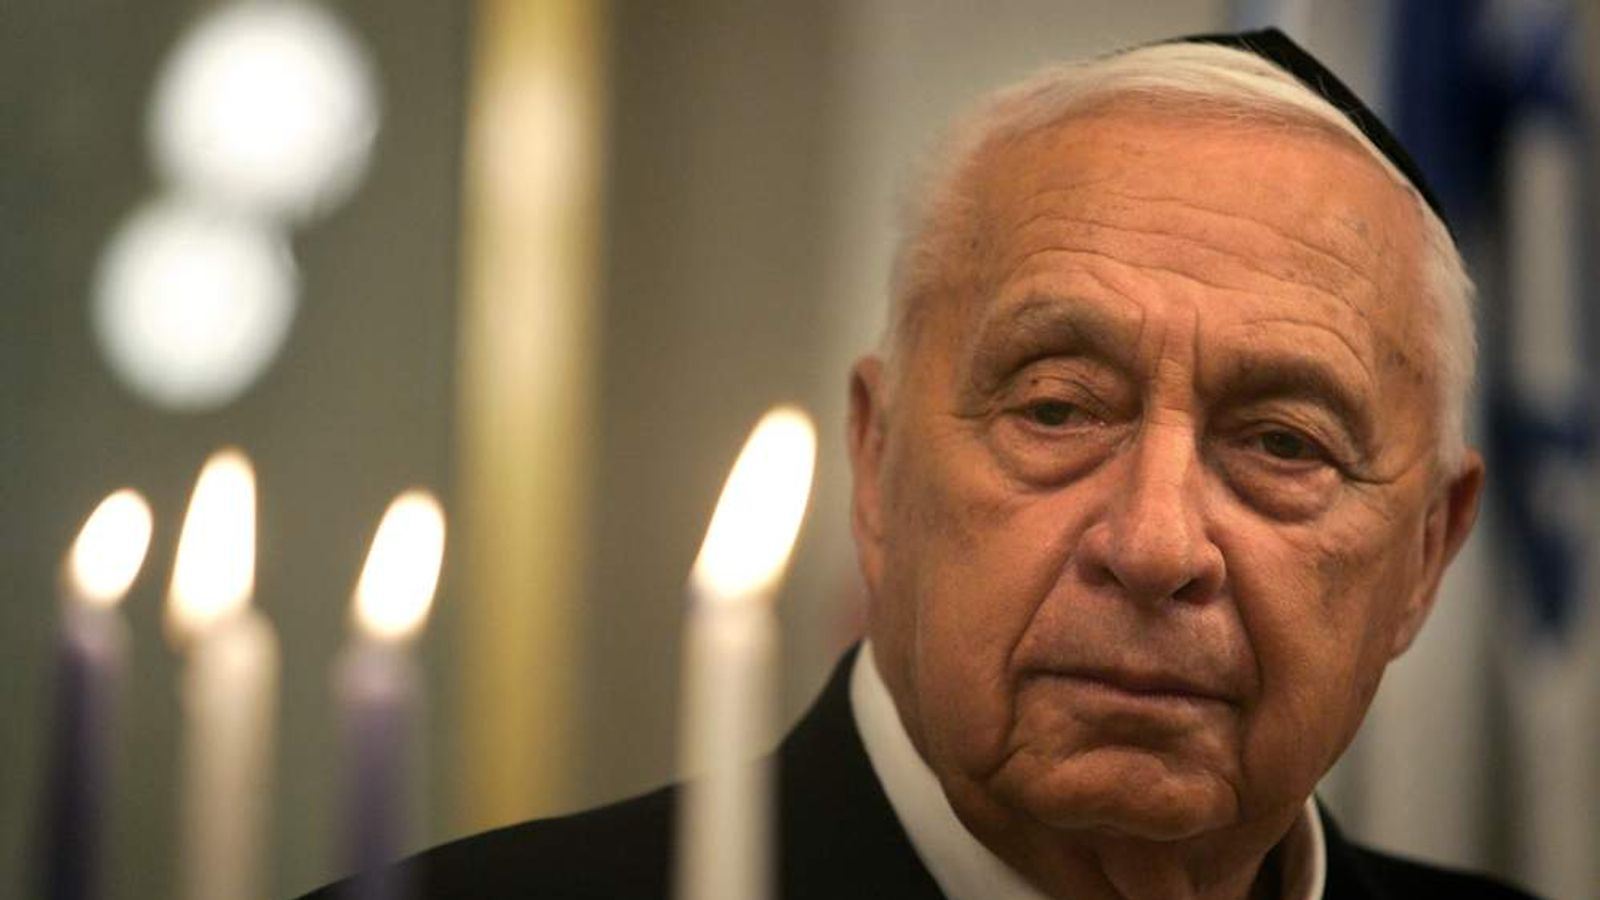 Ariel Sharon in 2005